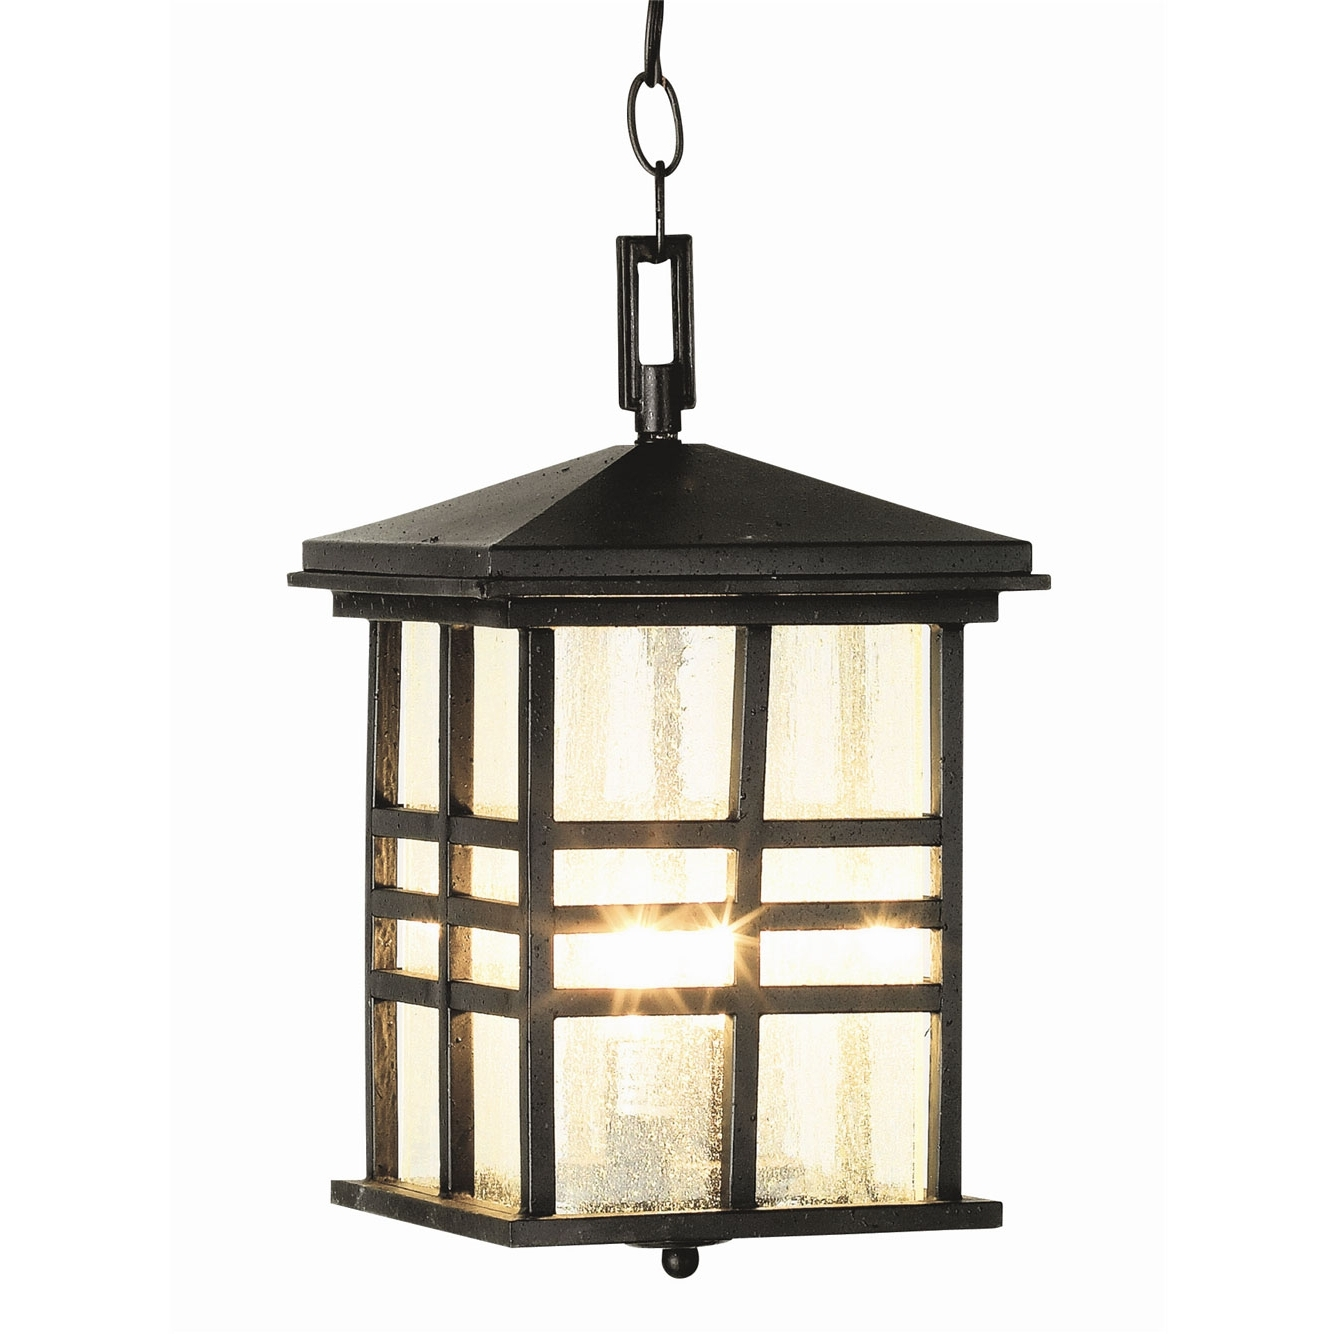 Outdoor Hanging Lanterns From Canada Pertaining To Most Up To Date Furniture : Design Your Rustic Outdoor Lighting Inside Cheap Hanging (View 19 of 20)